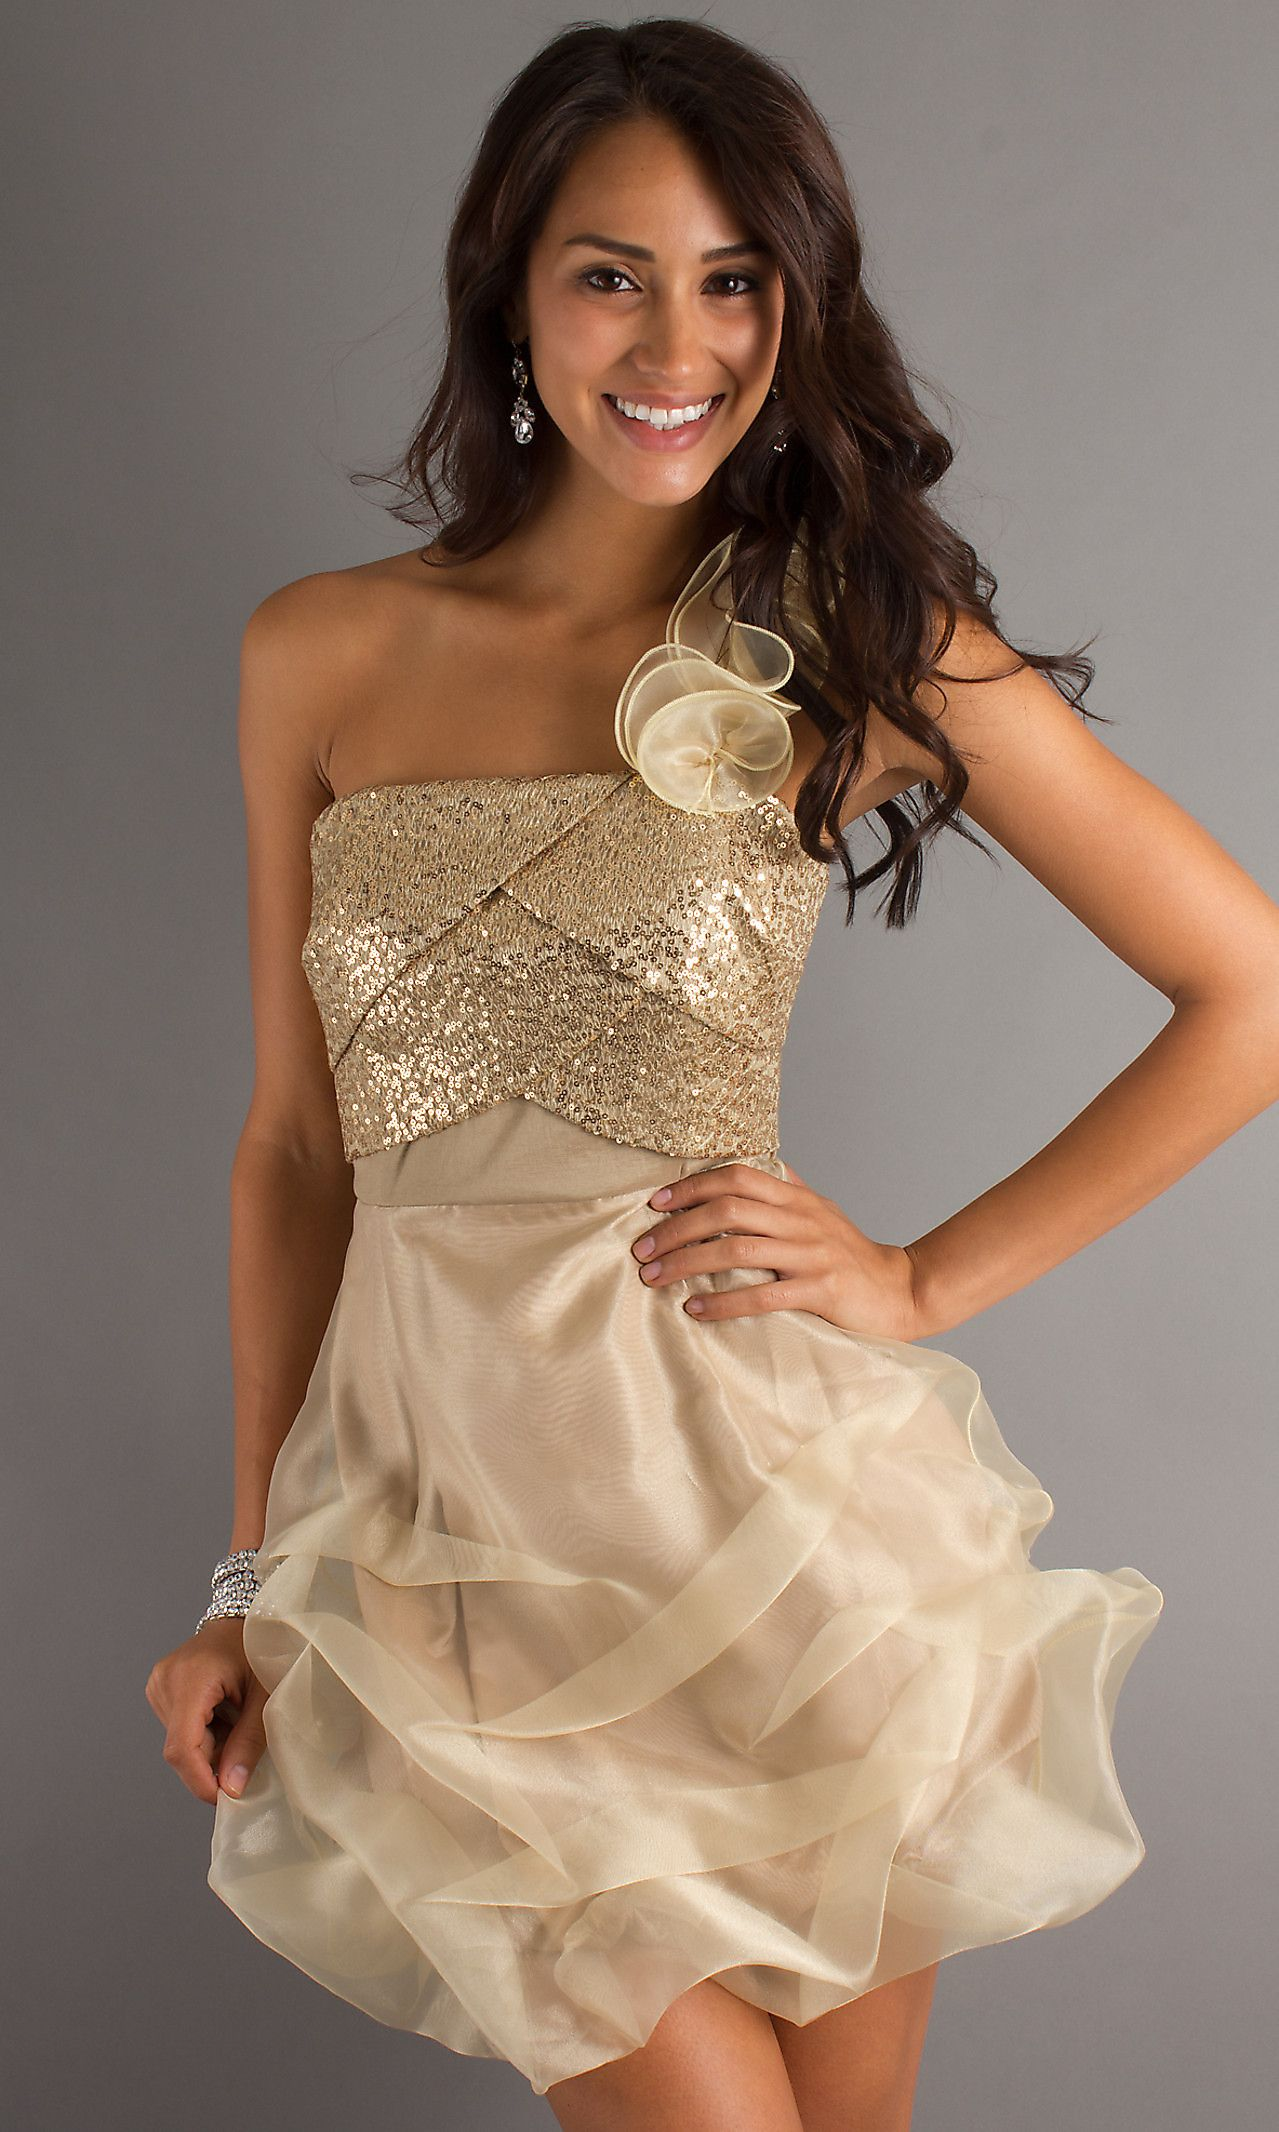 Lo lo lord and taylor party dresses - Short Gold Party Dress Xoxo Short Prom Dresses Simply Dresses